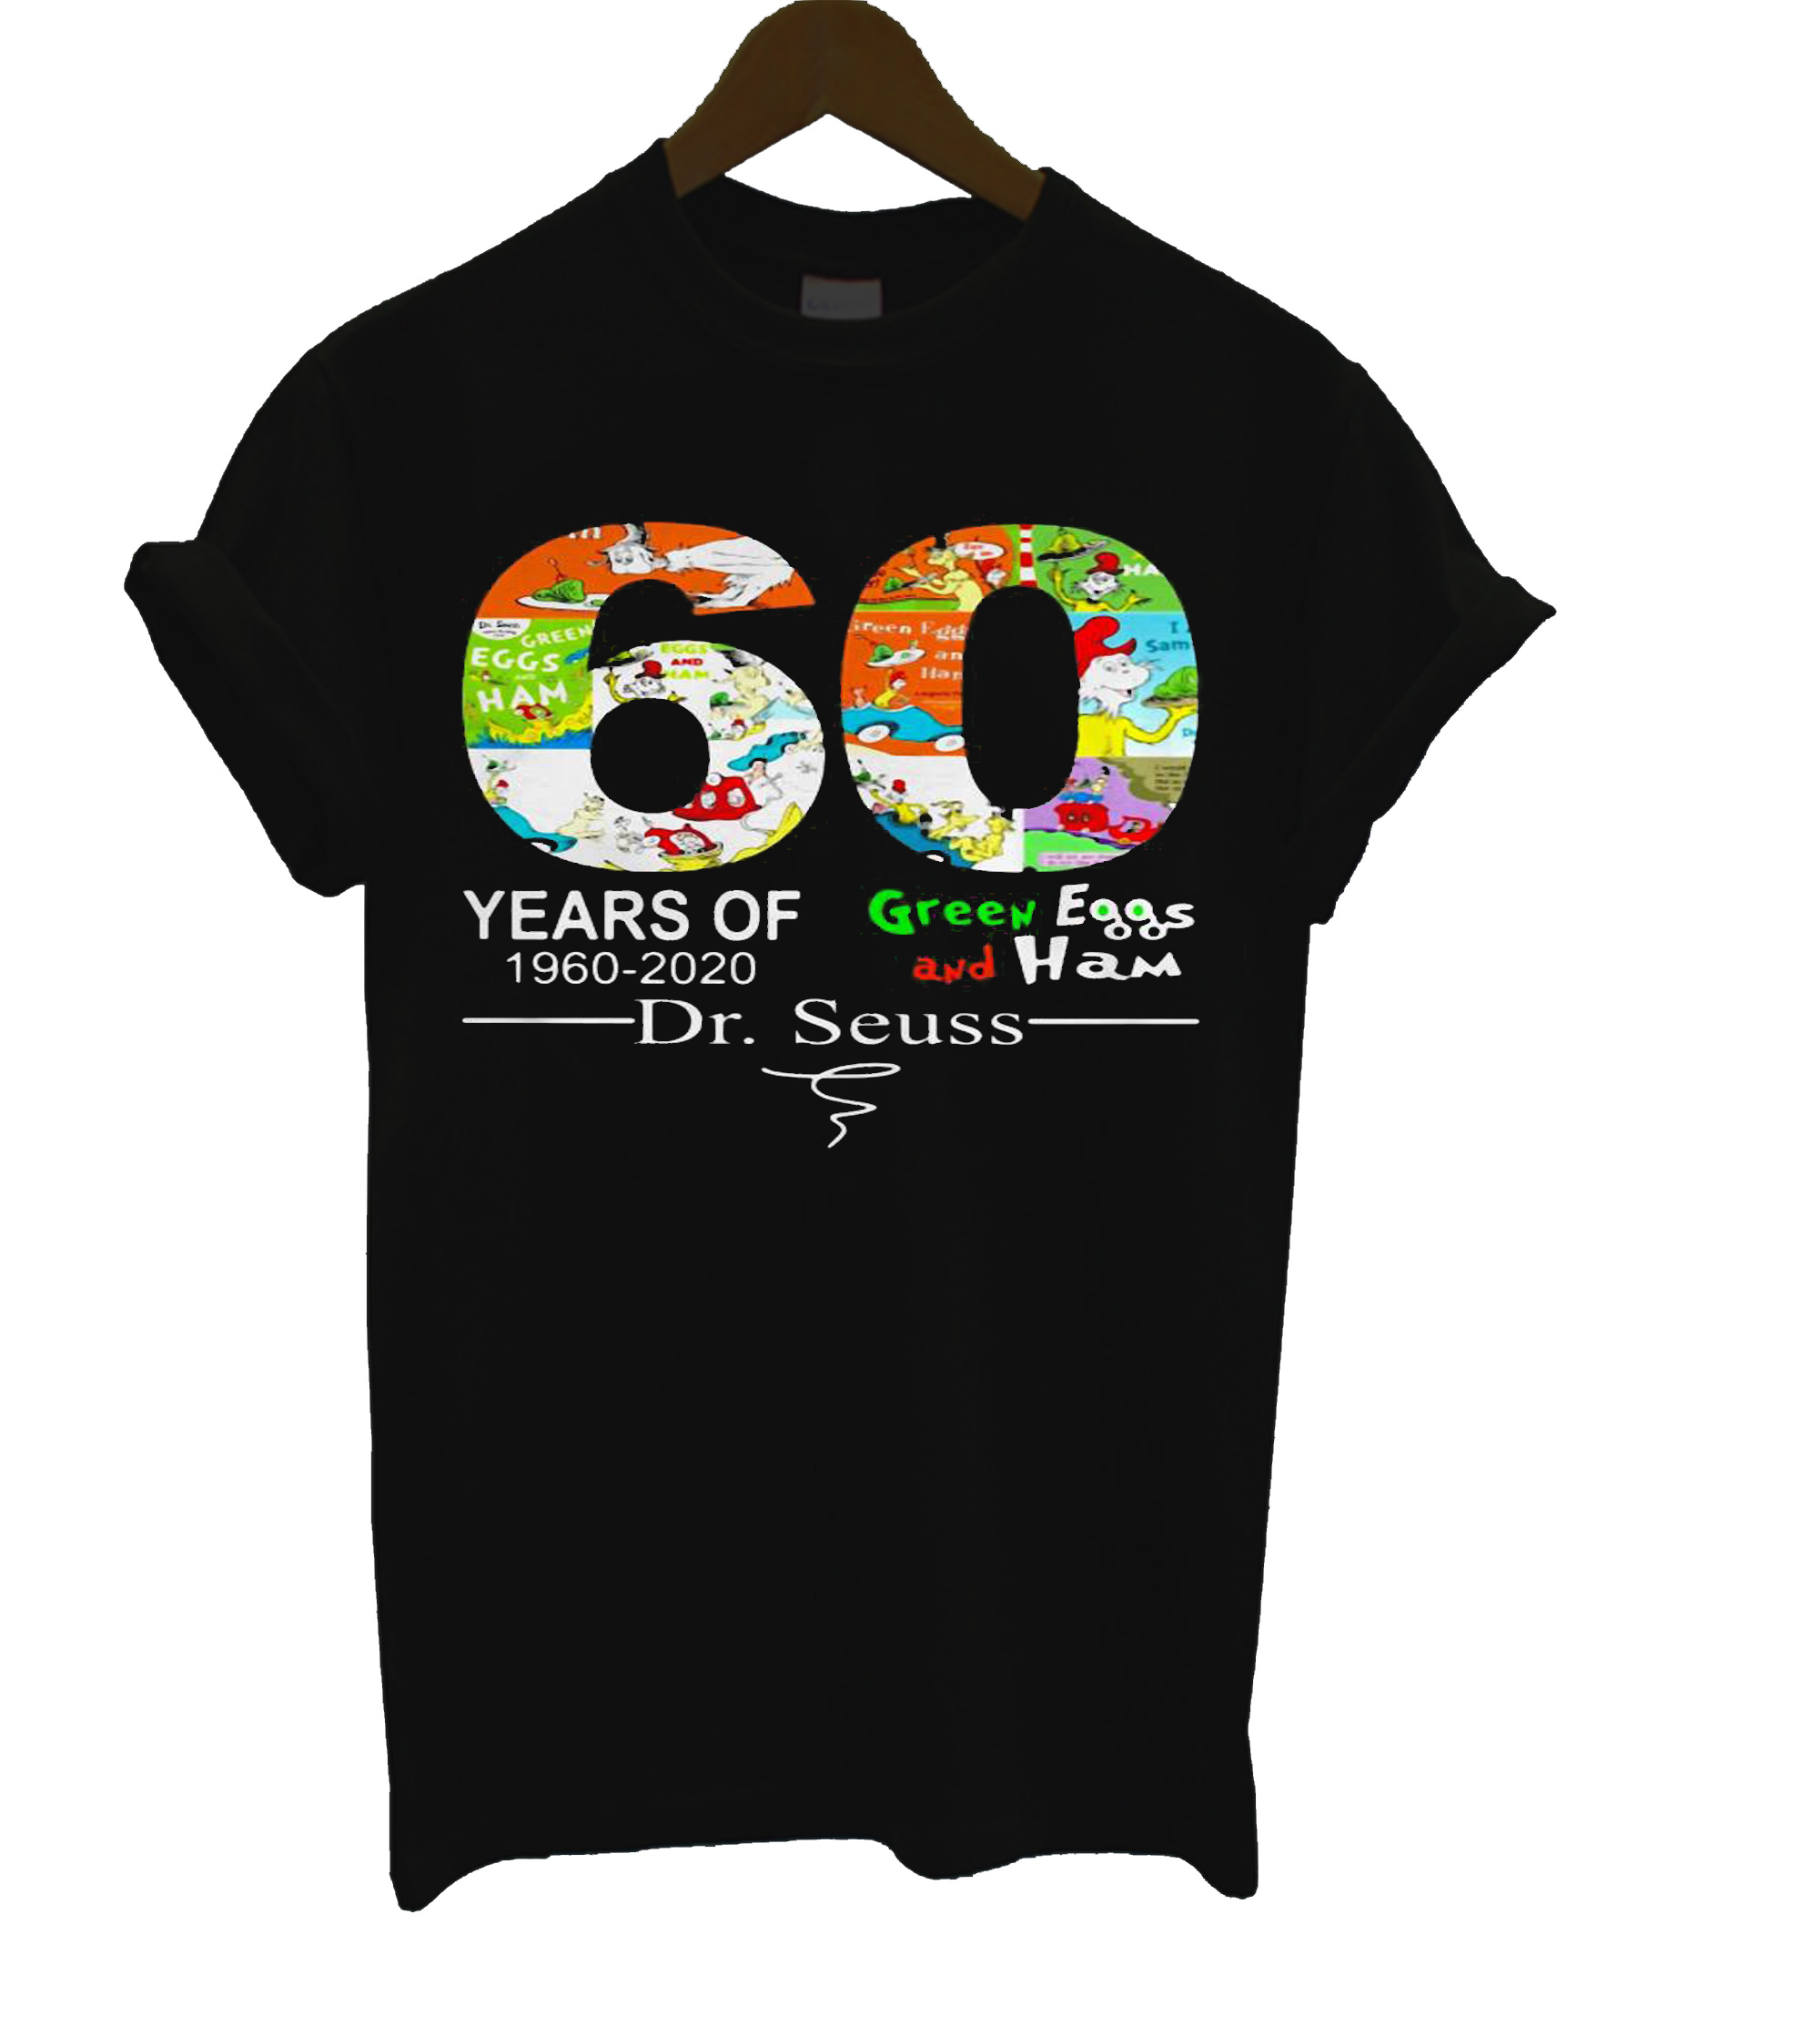 60 Years of Green Eggs and Ham 1960-2020 Dr. Seuss Signature T Shirt